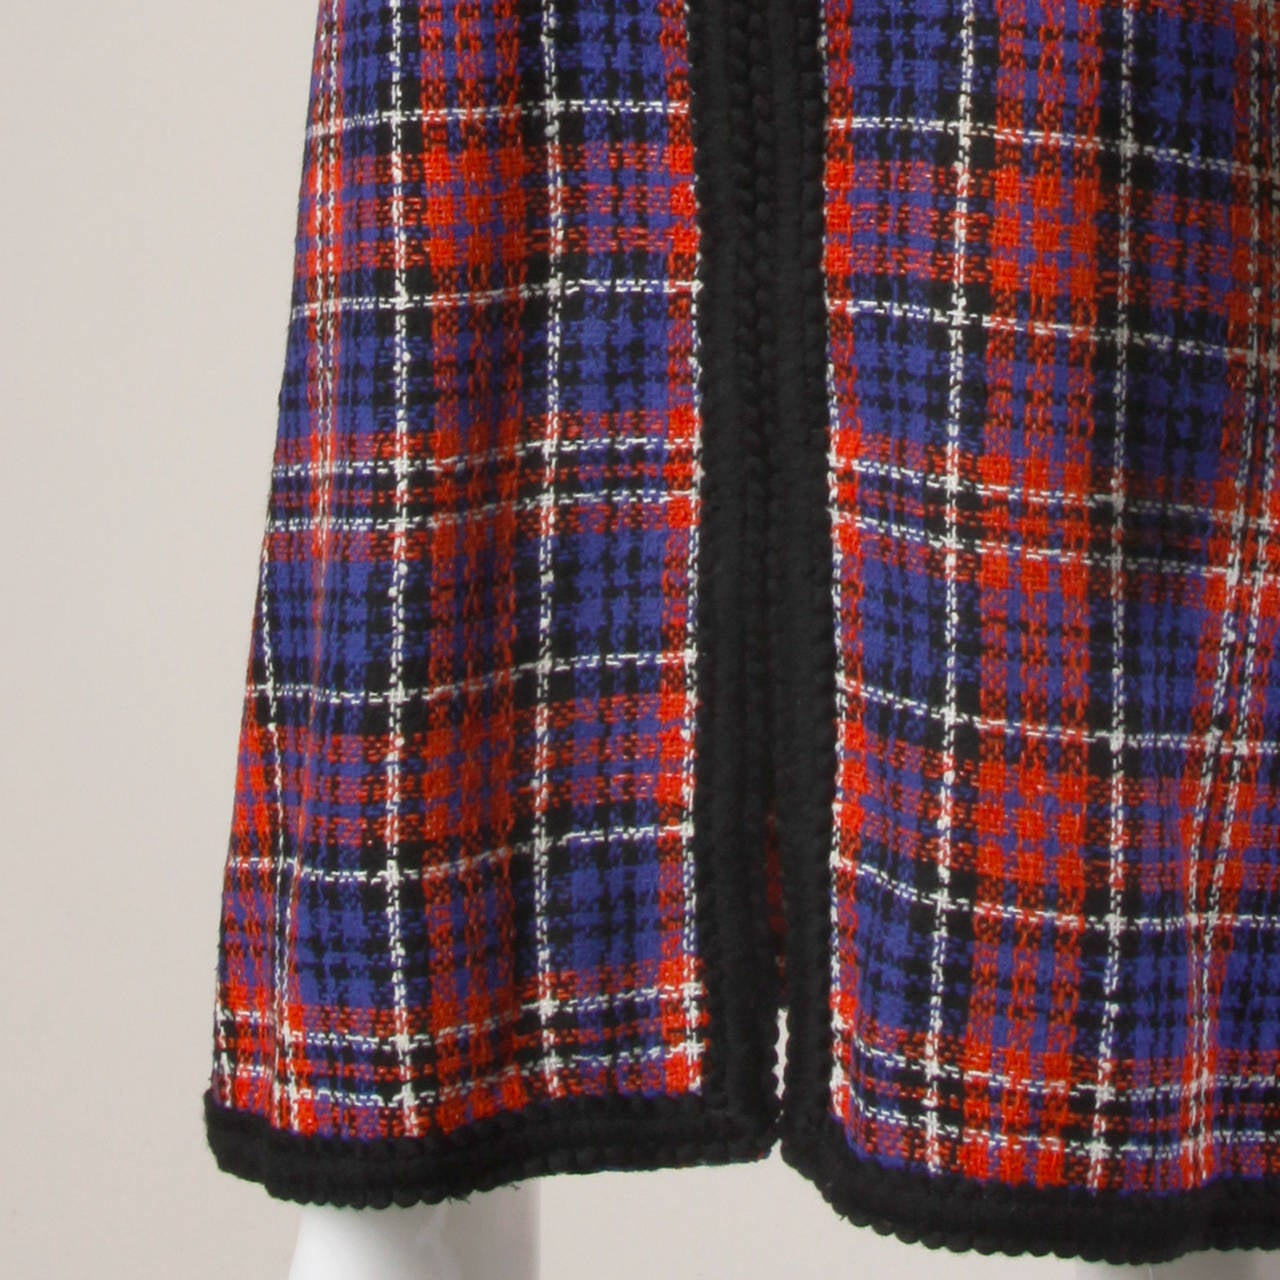 Oscar de la Renta Vintage 1960s Plaid Dress 8